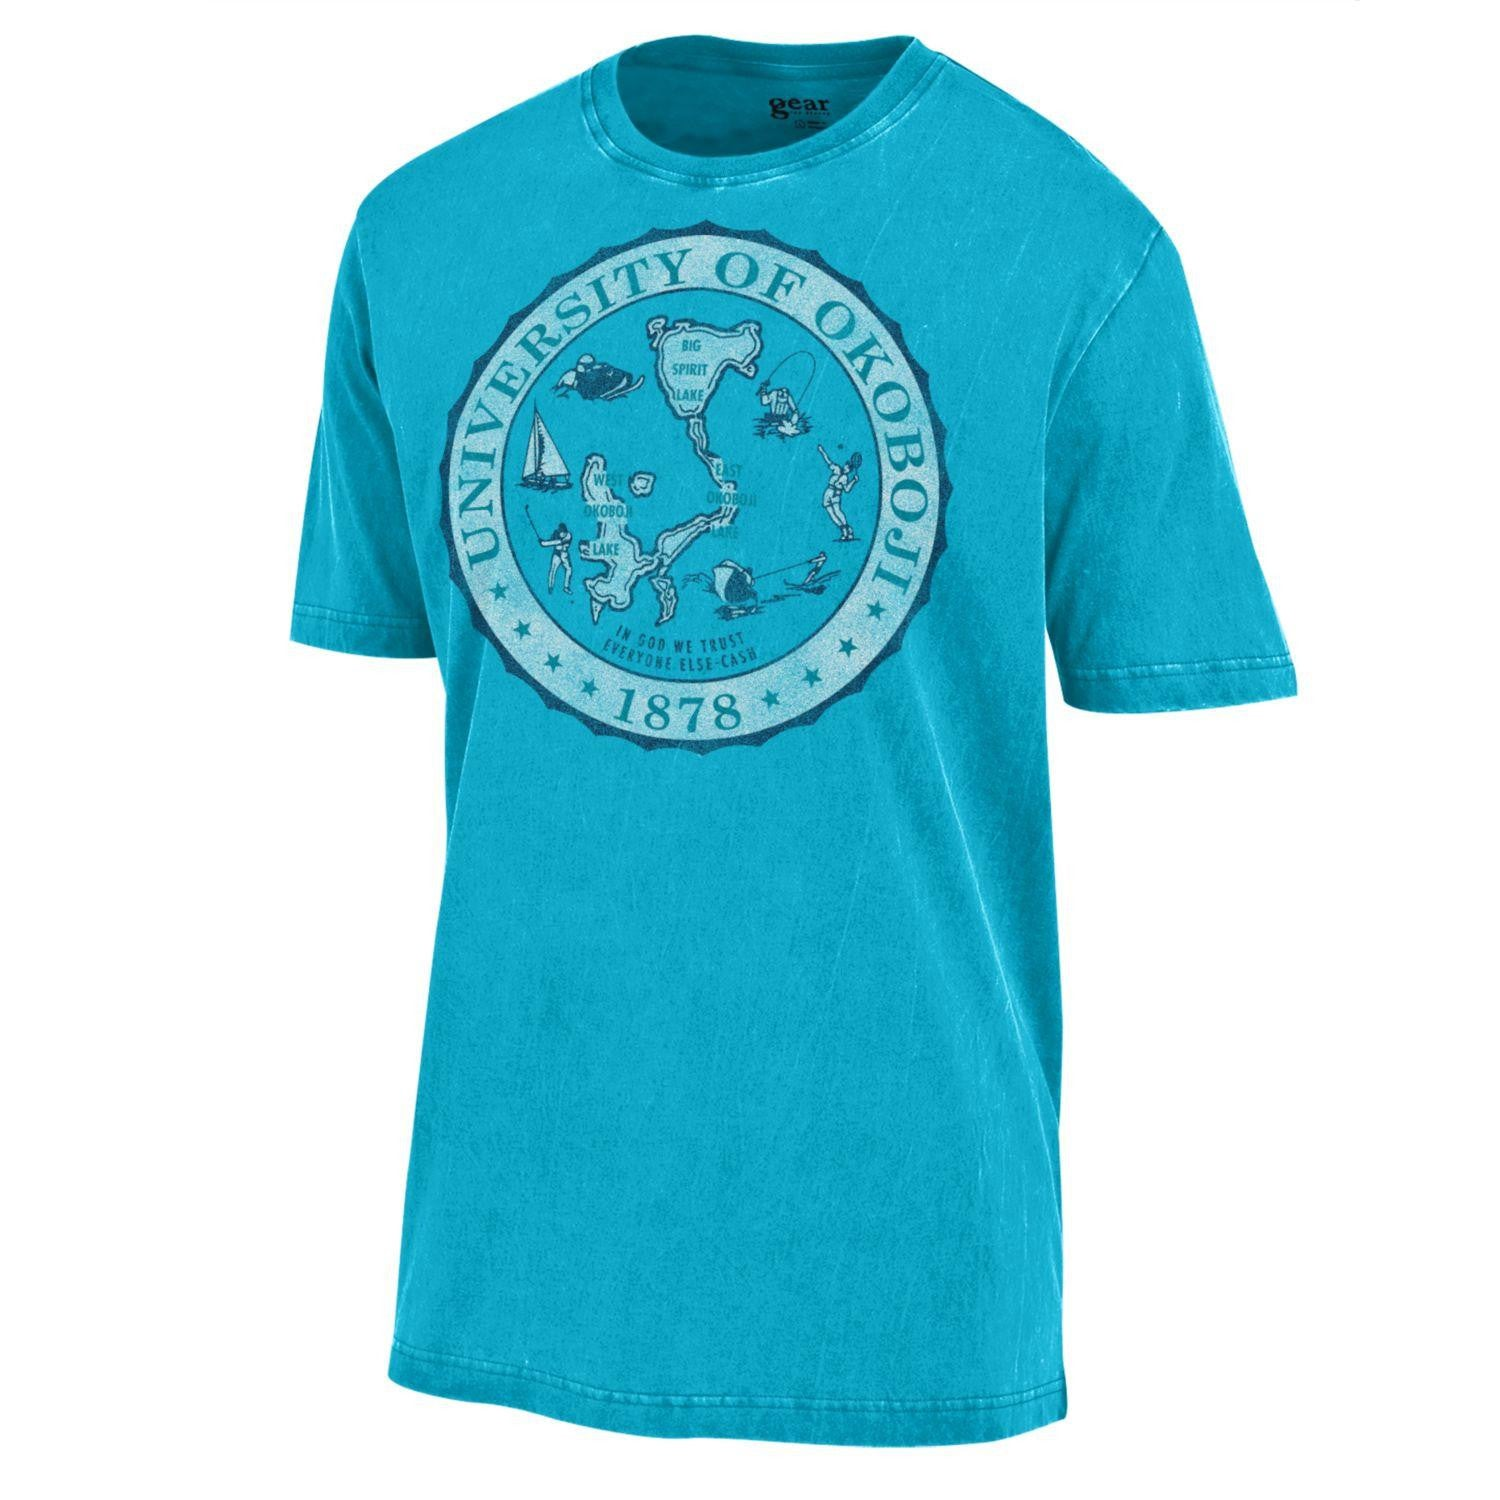 U of O Crest Outta Town Tee - Liquid Blue